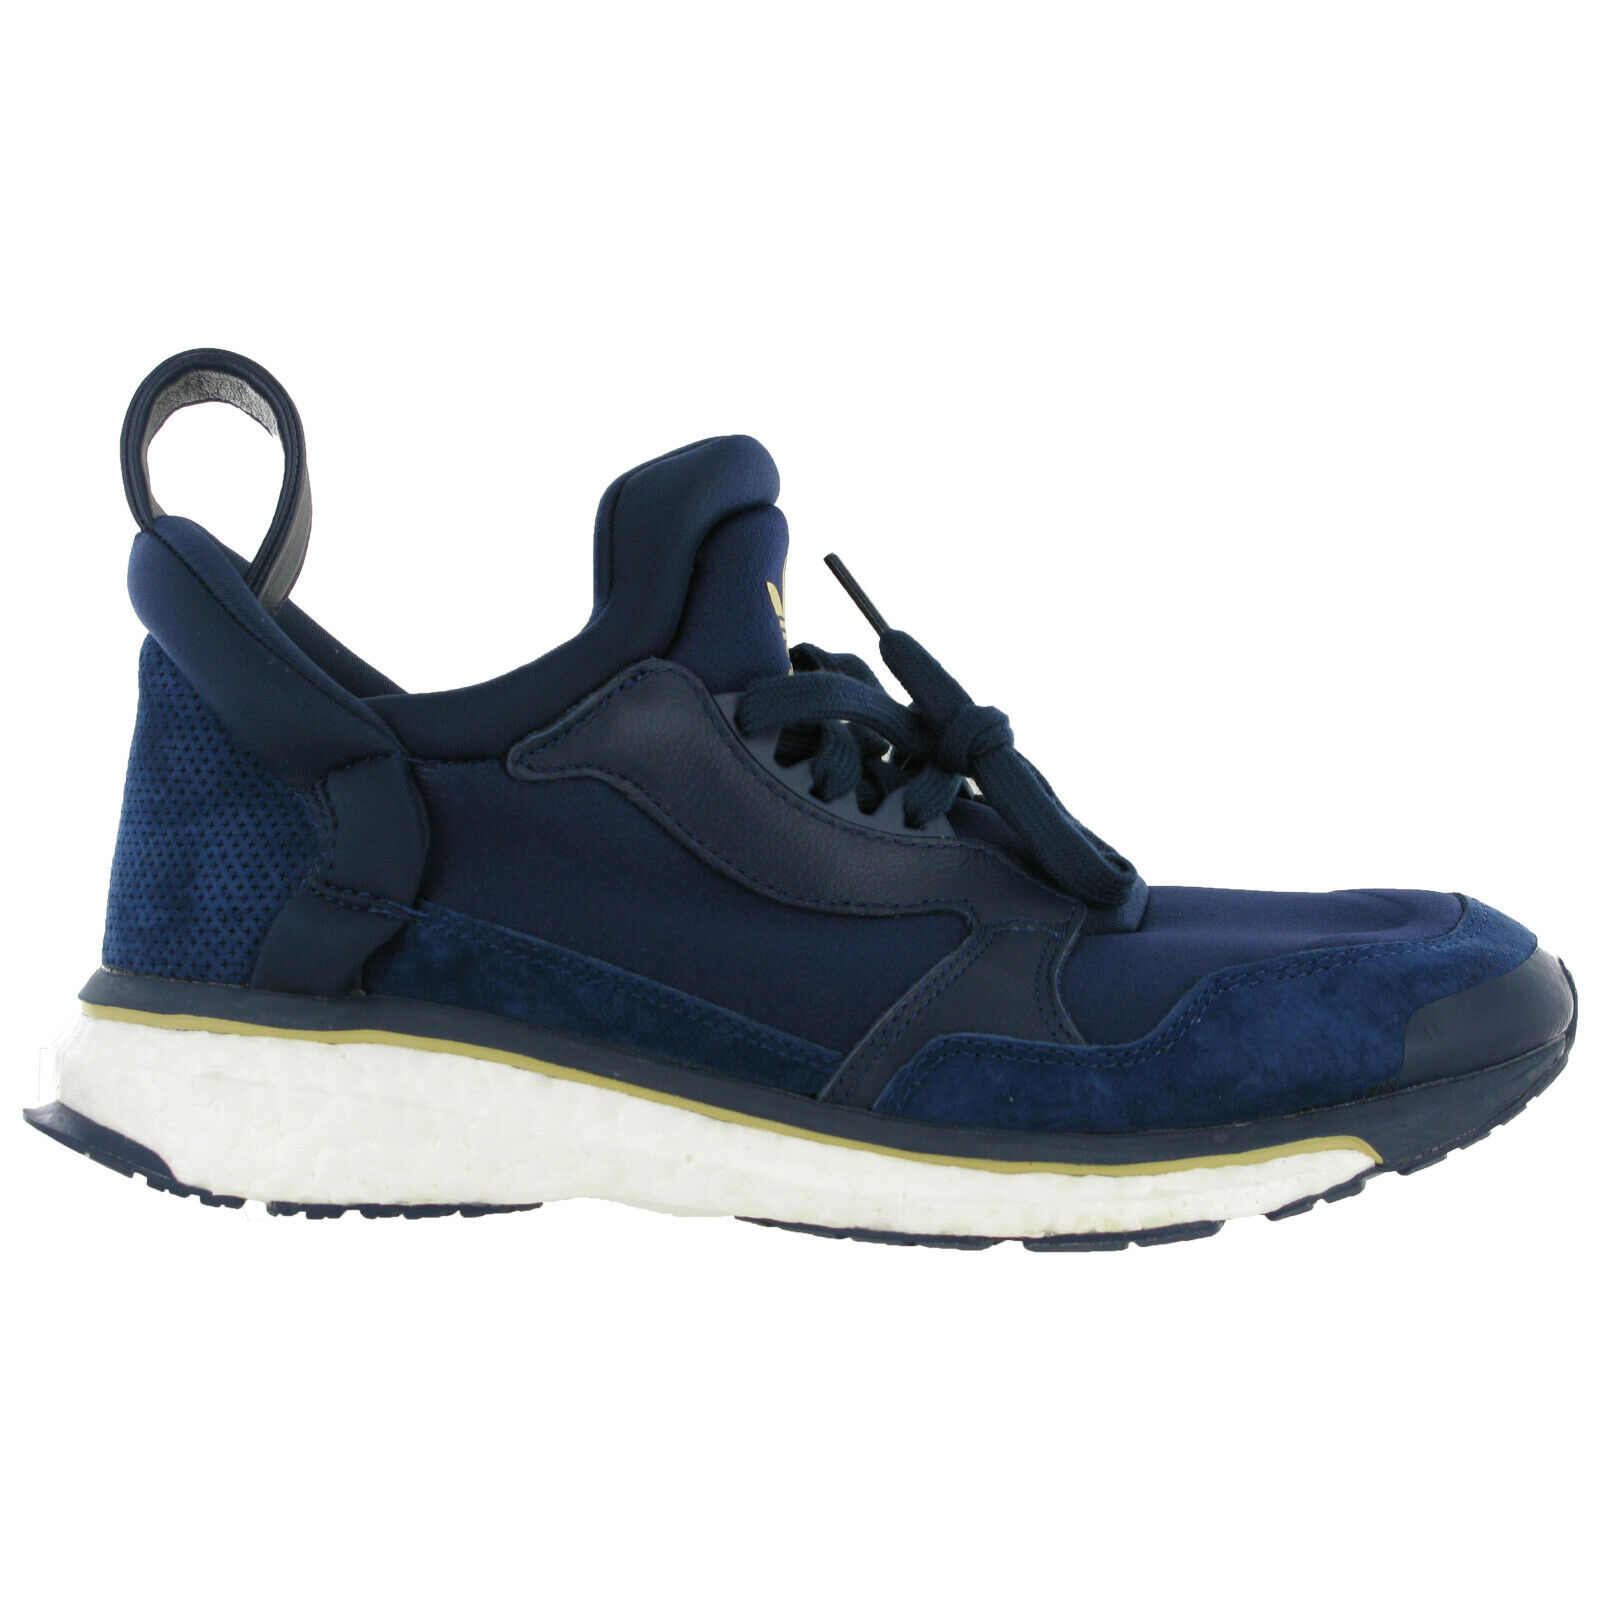 Adidas Blue Boost Trainers Running Cloudfoam Lightweight Mens Sports Shoes